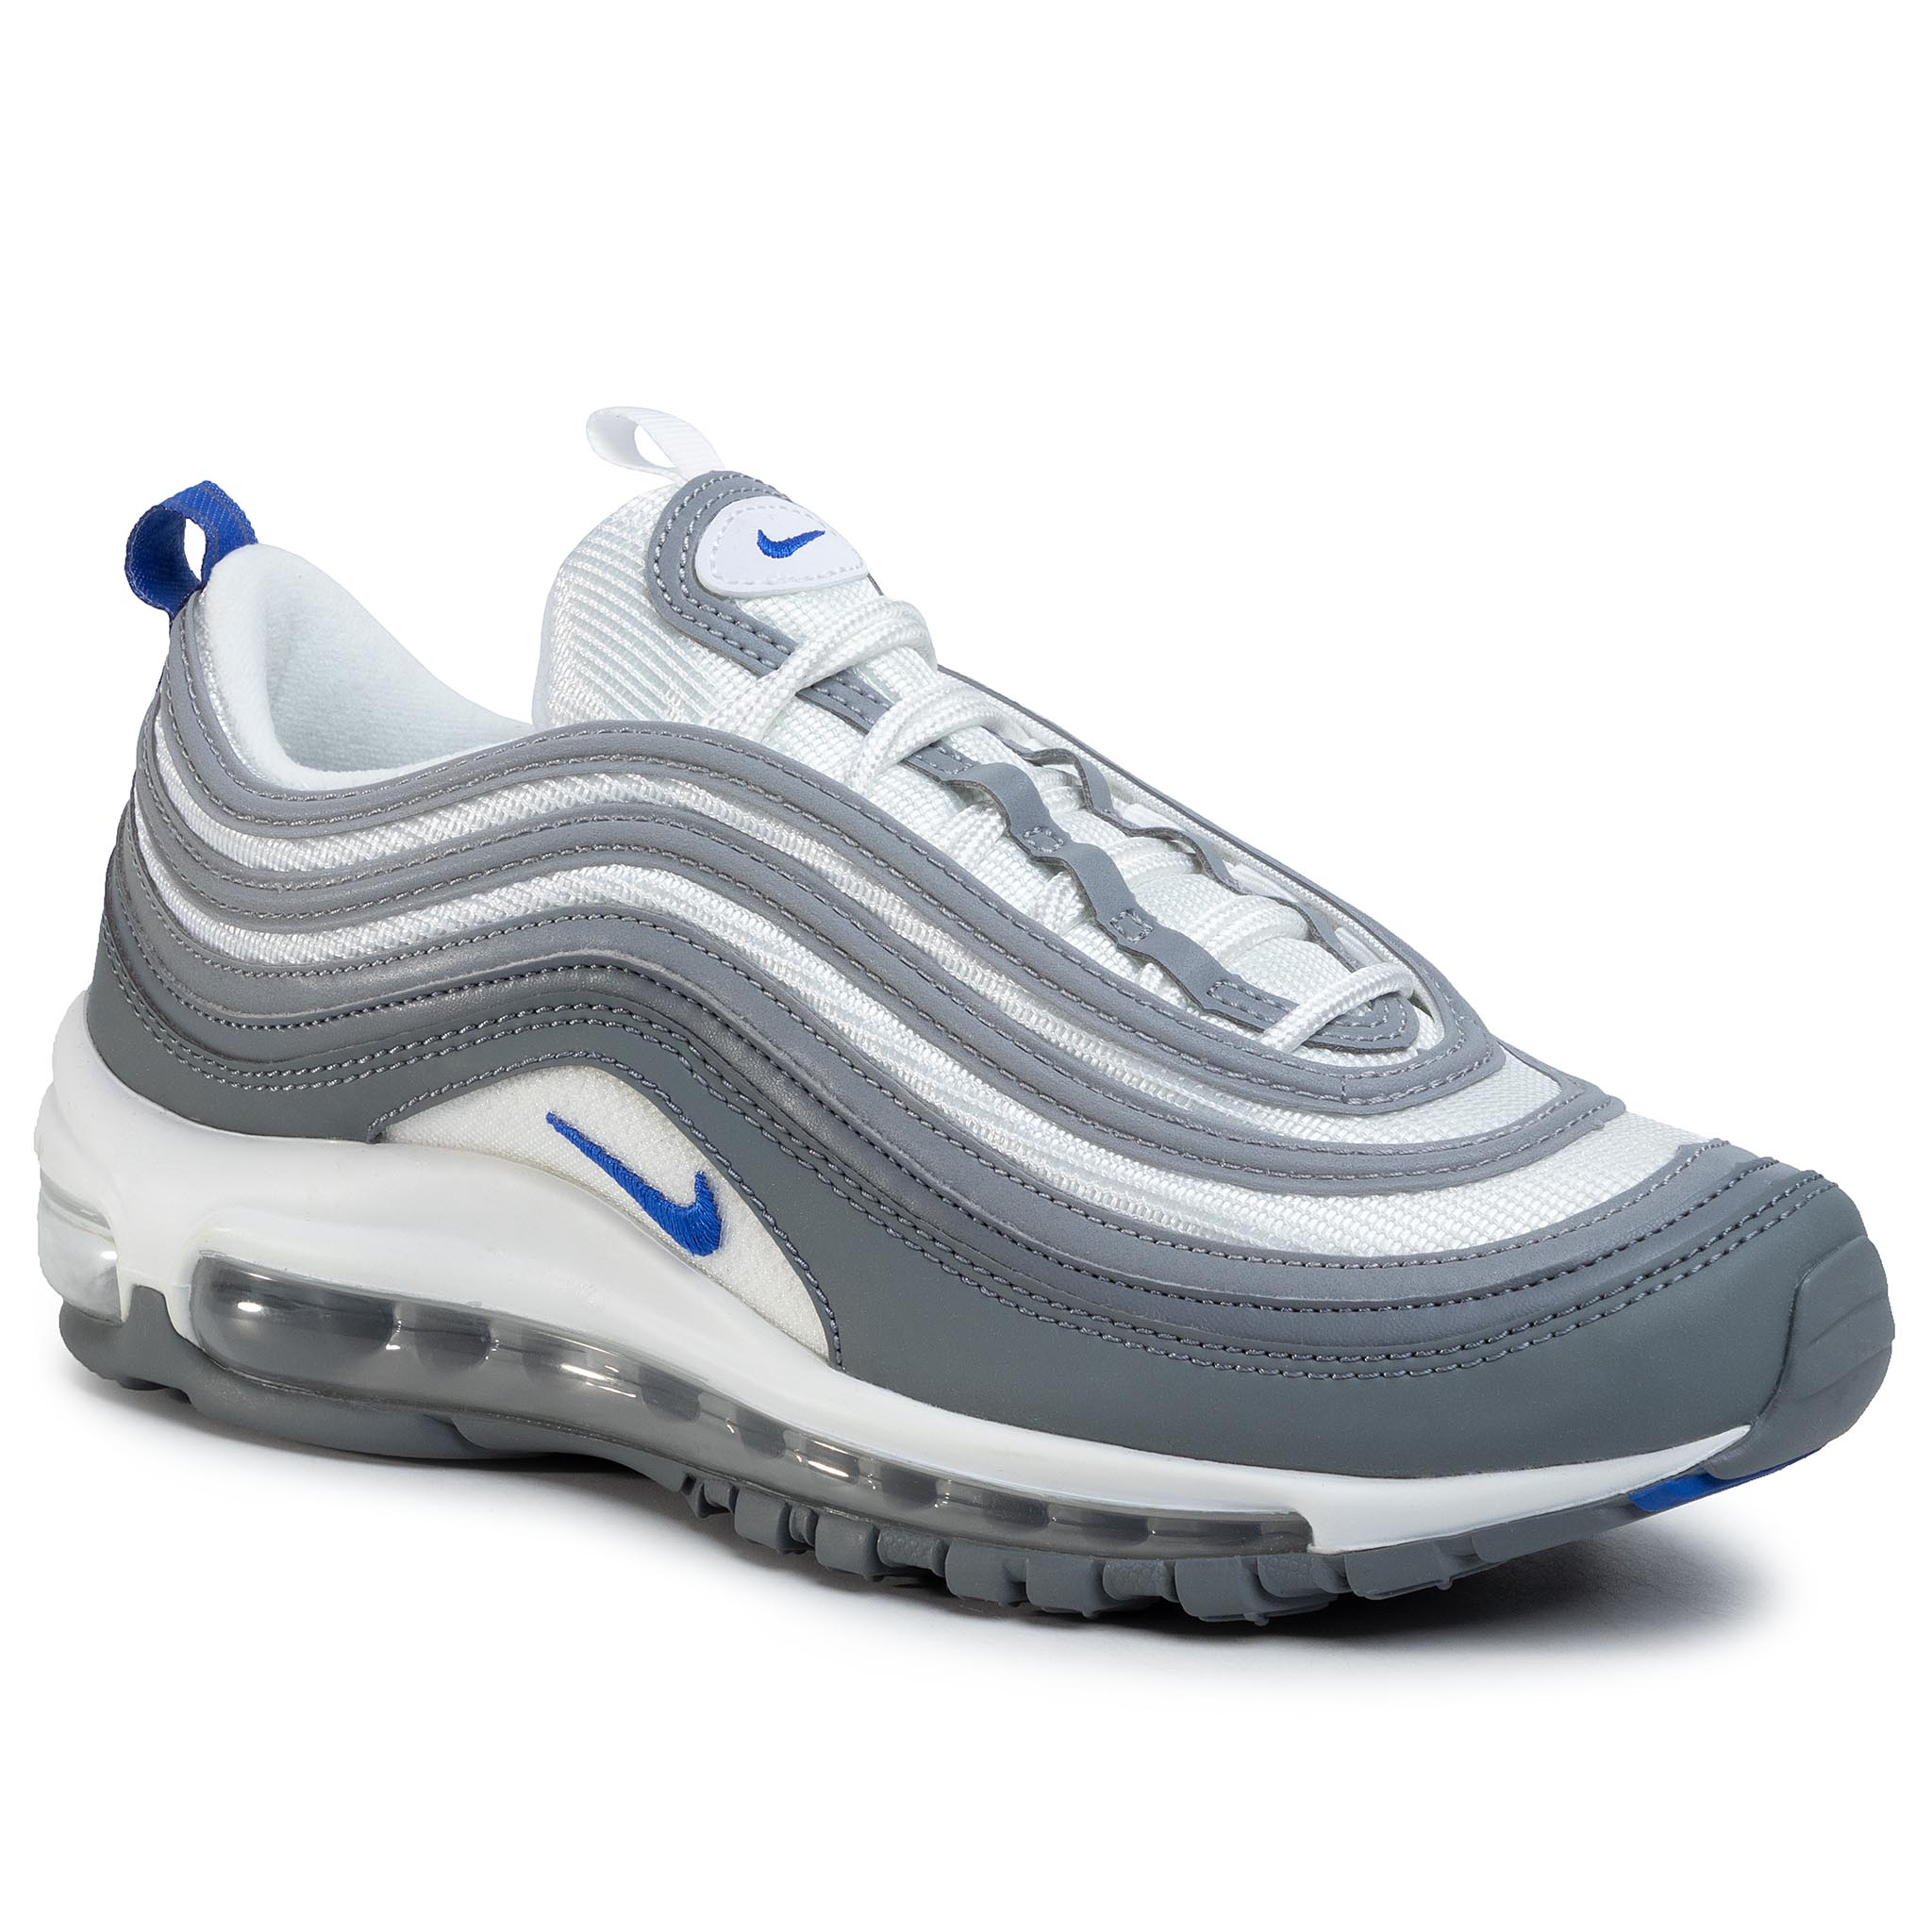 Topánky NIKE - Air Max 97 CK0896 100 White/Hyper Royal/Cool Grey